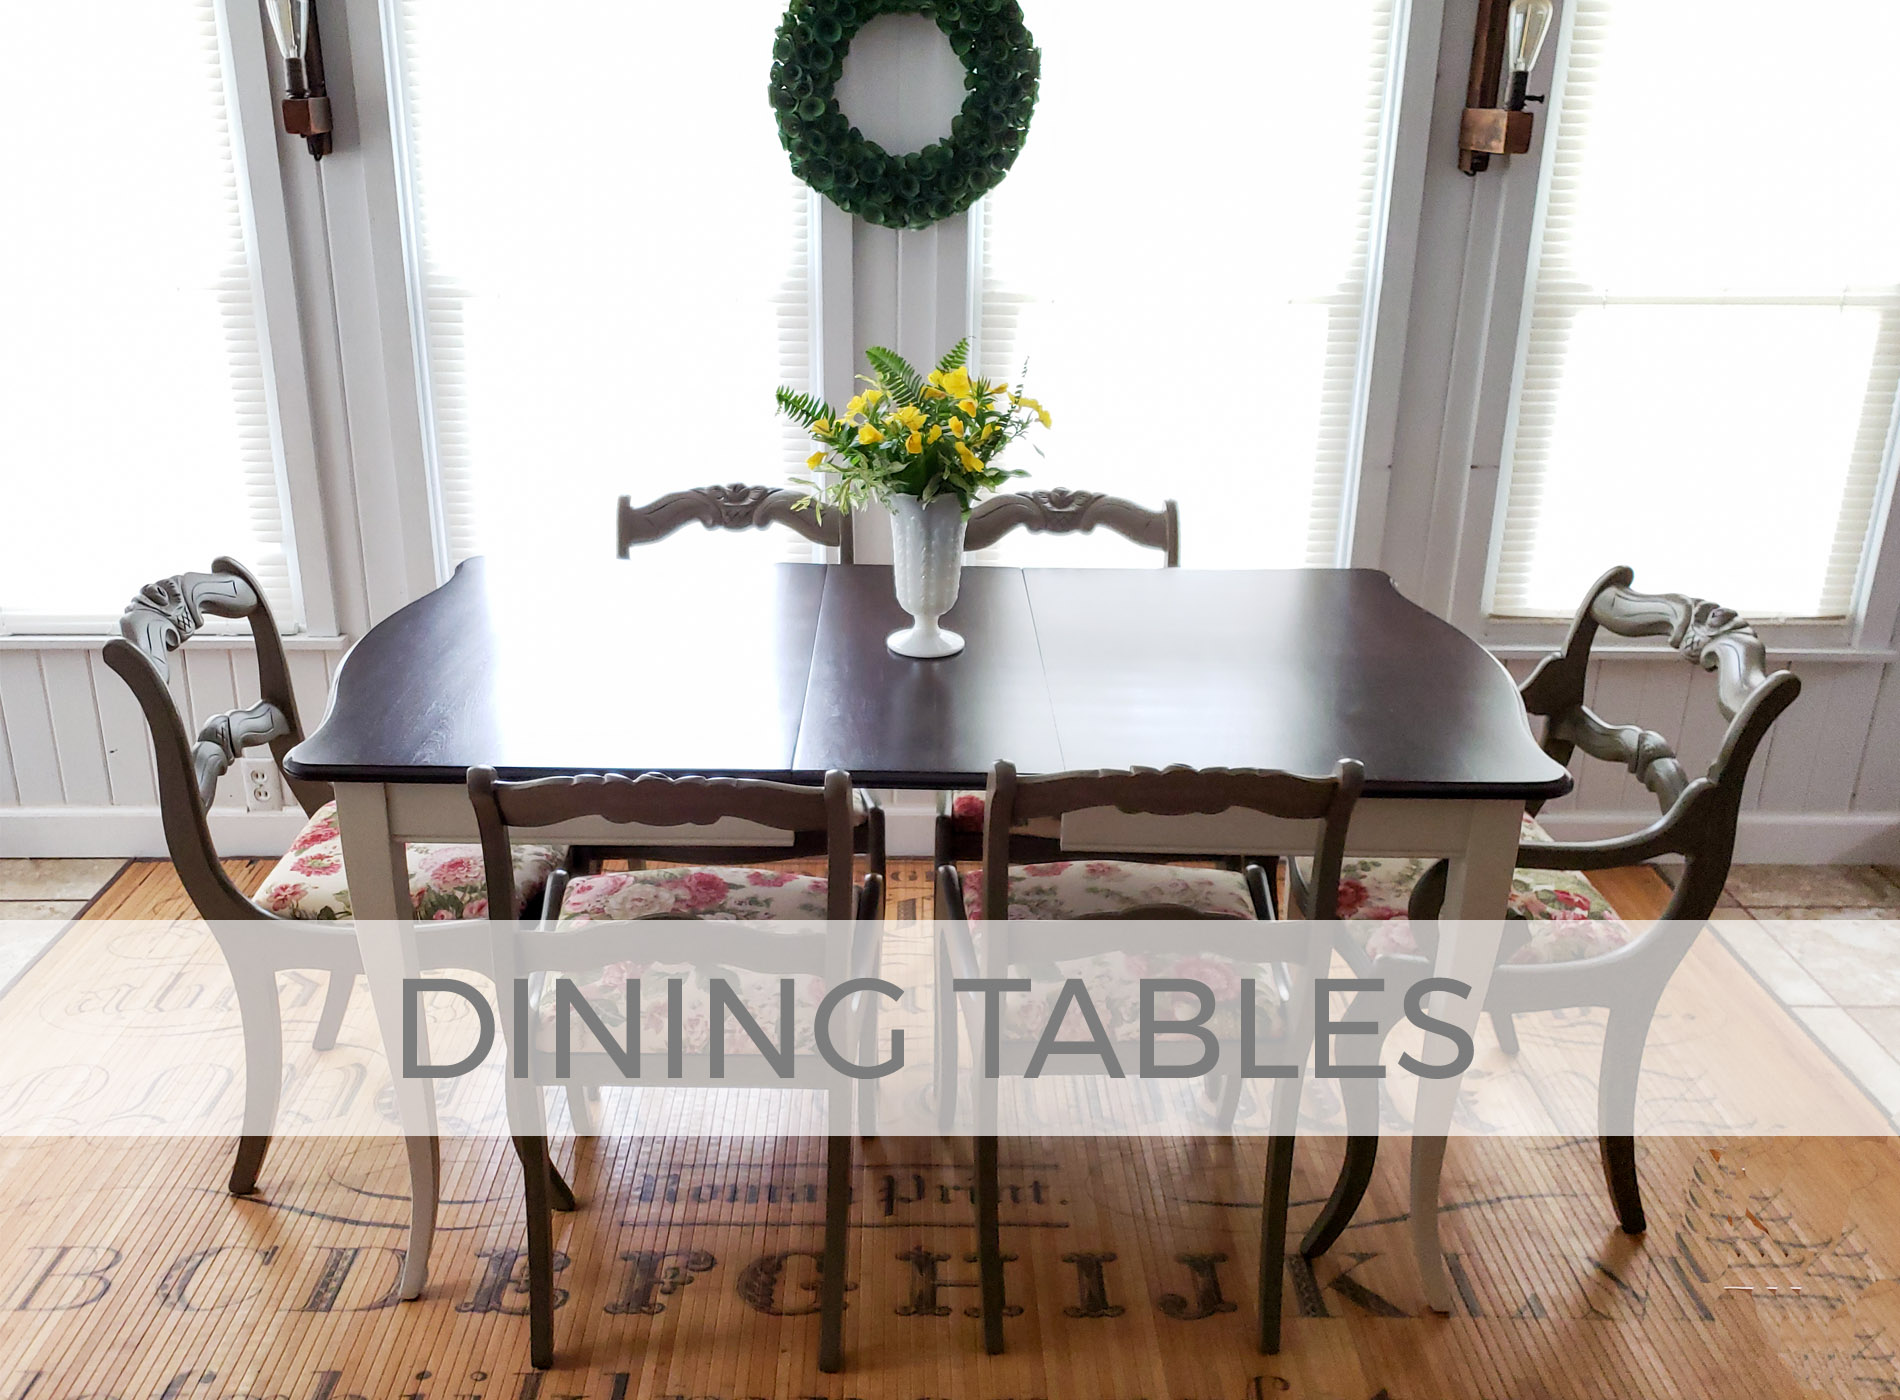 Dining Table by Larissa of Prodigal Pieces | prodigalpieces.com